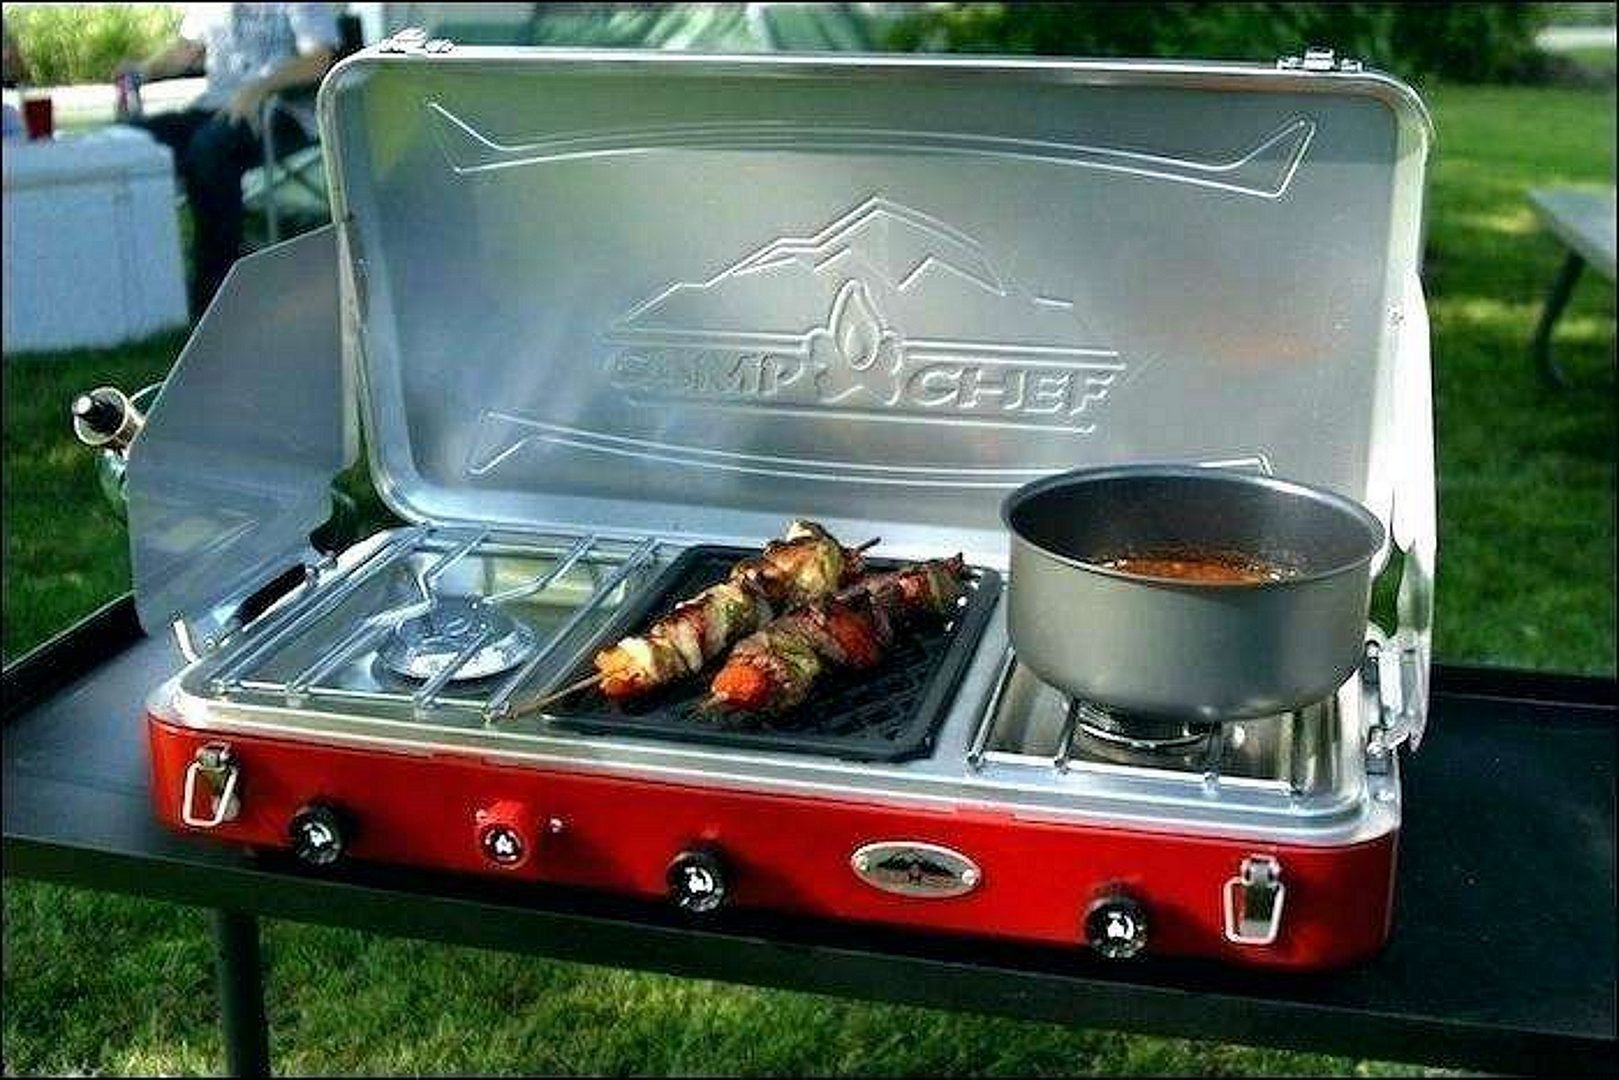 CampChef Camping Grill, red